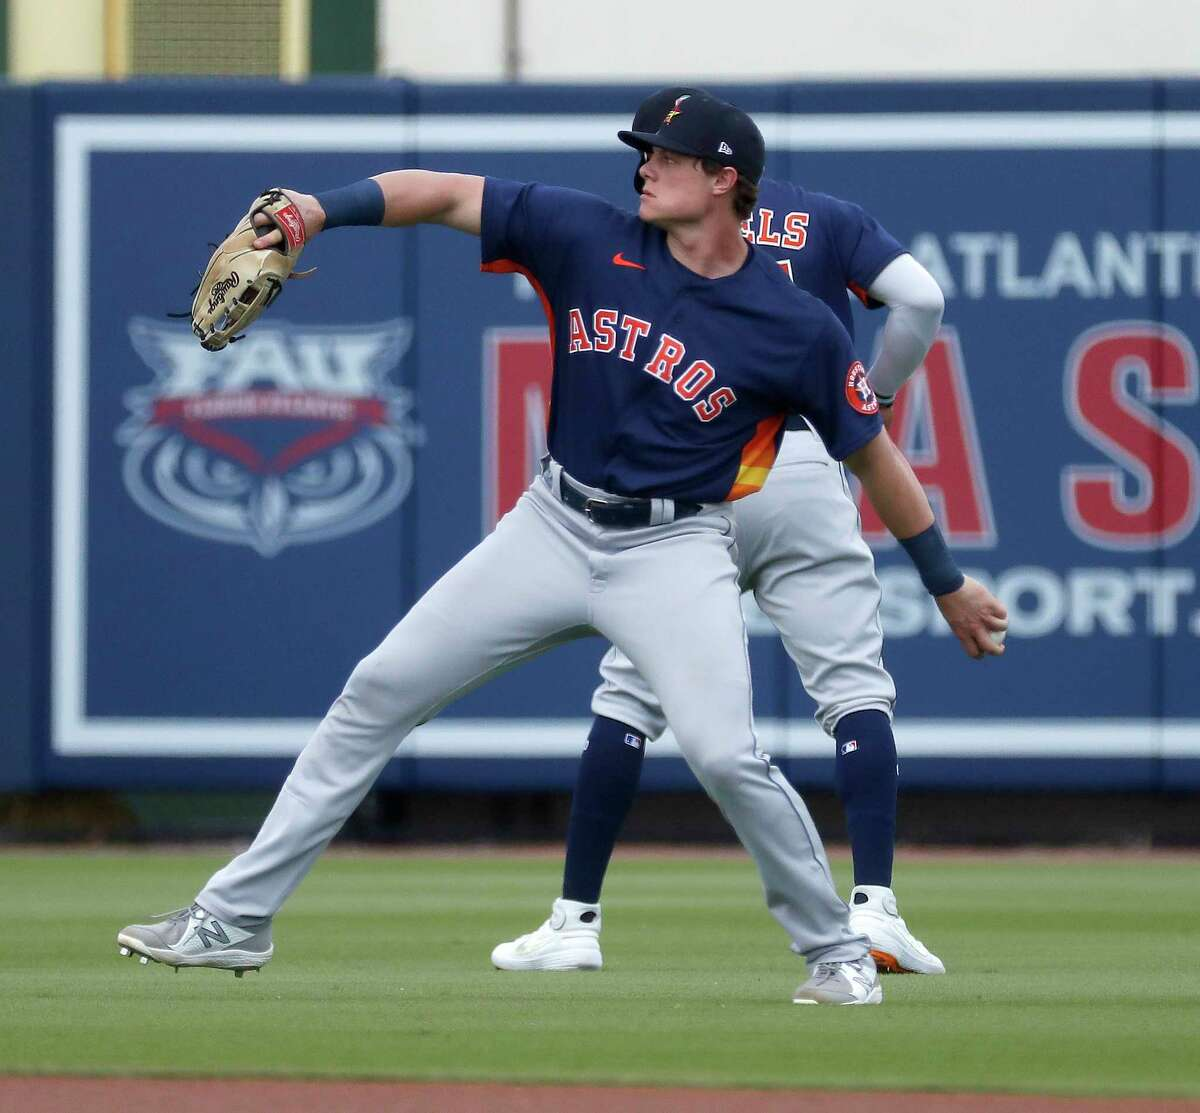 Jake Meyers will get a spot on the Astros as a fourth outfielder in the wake of the Myles Straw trade.